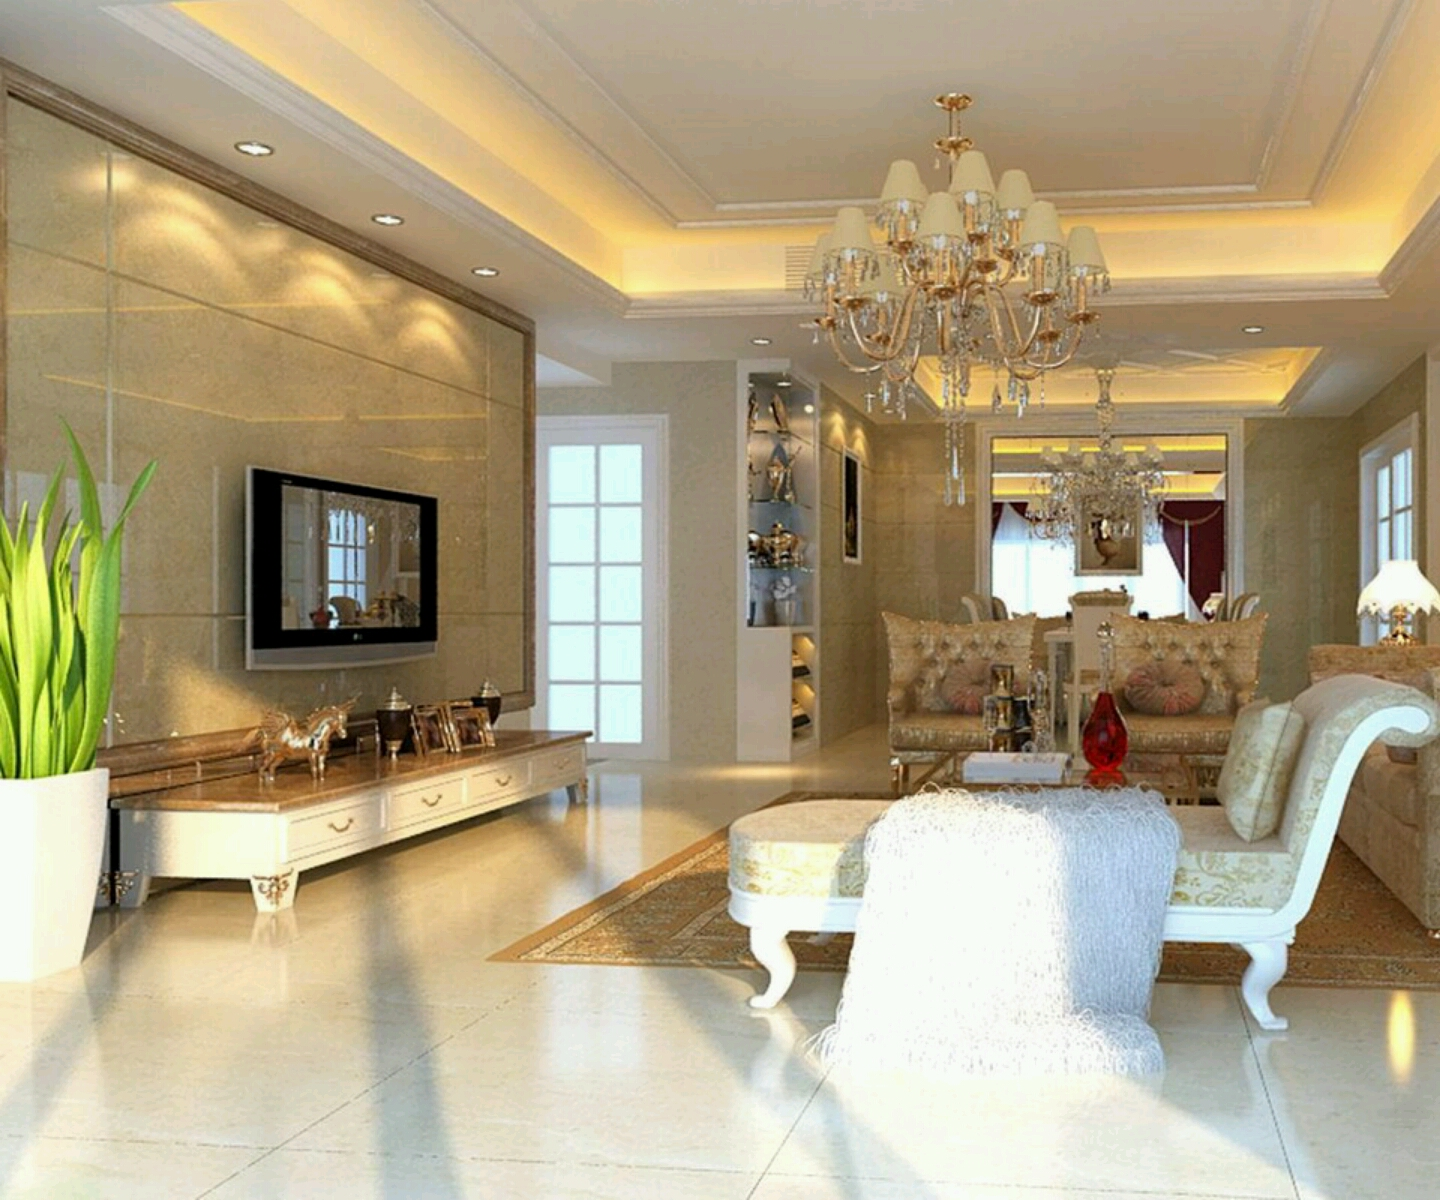 New home designs latest luxury homes interior decoration Luxur home interior